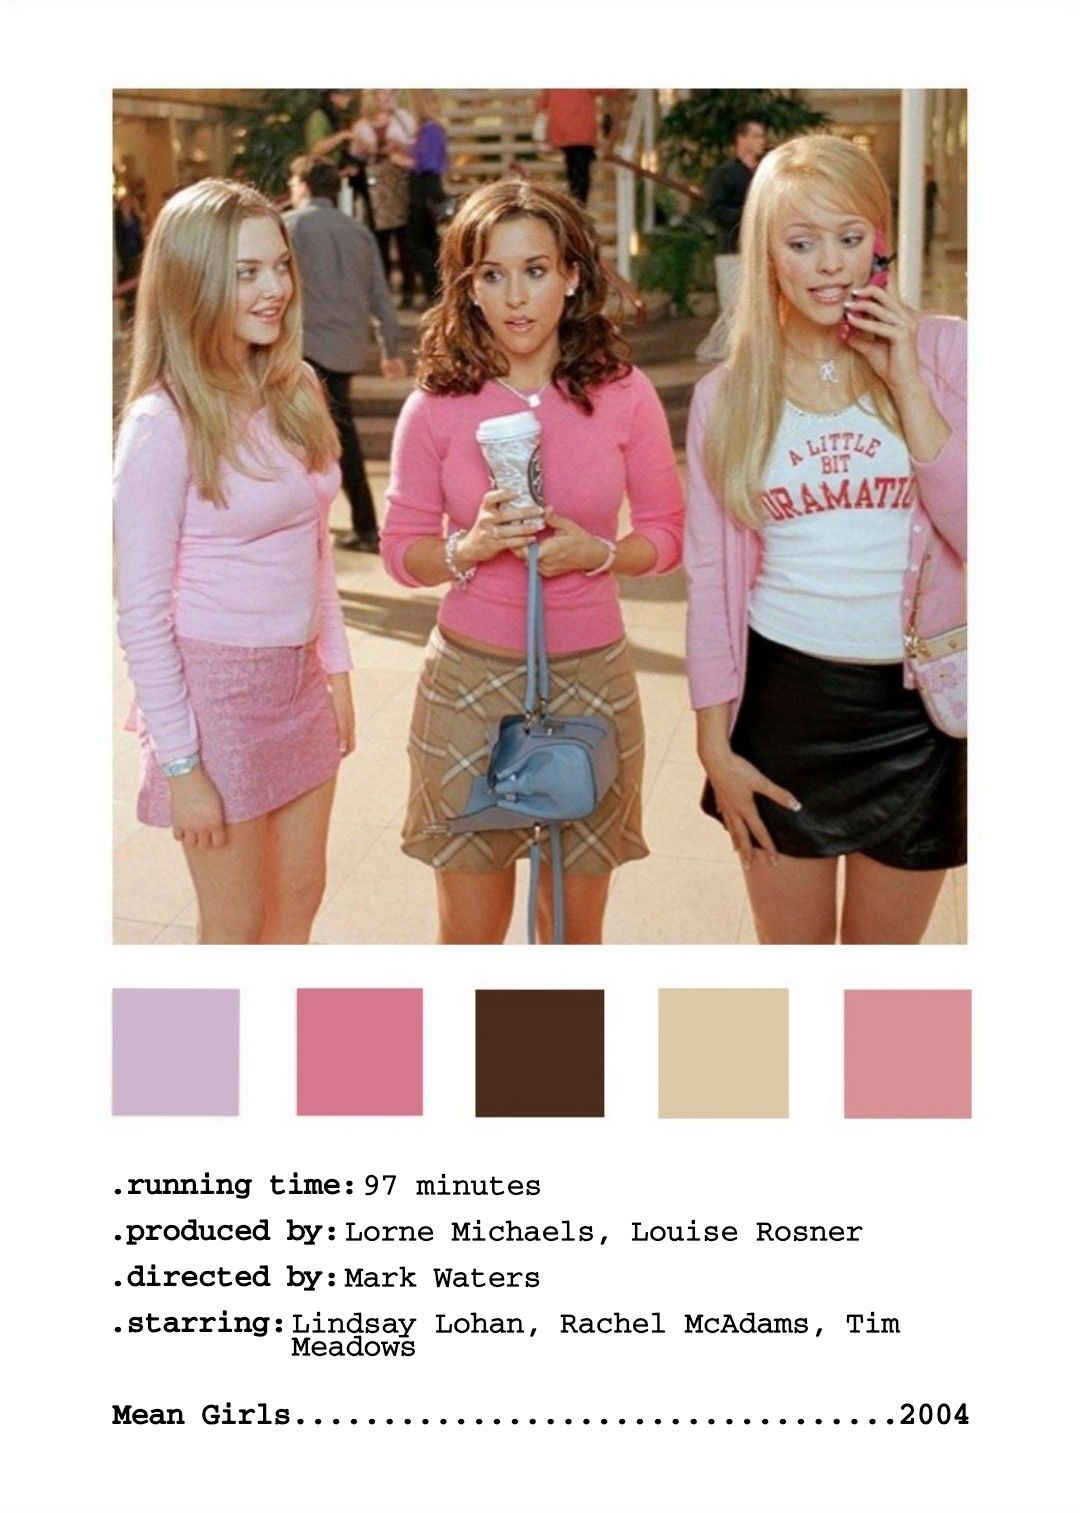 Mean Girls Poster Peliculas Chicas Mean Girls Chicas